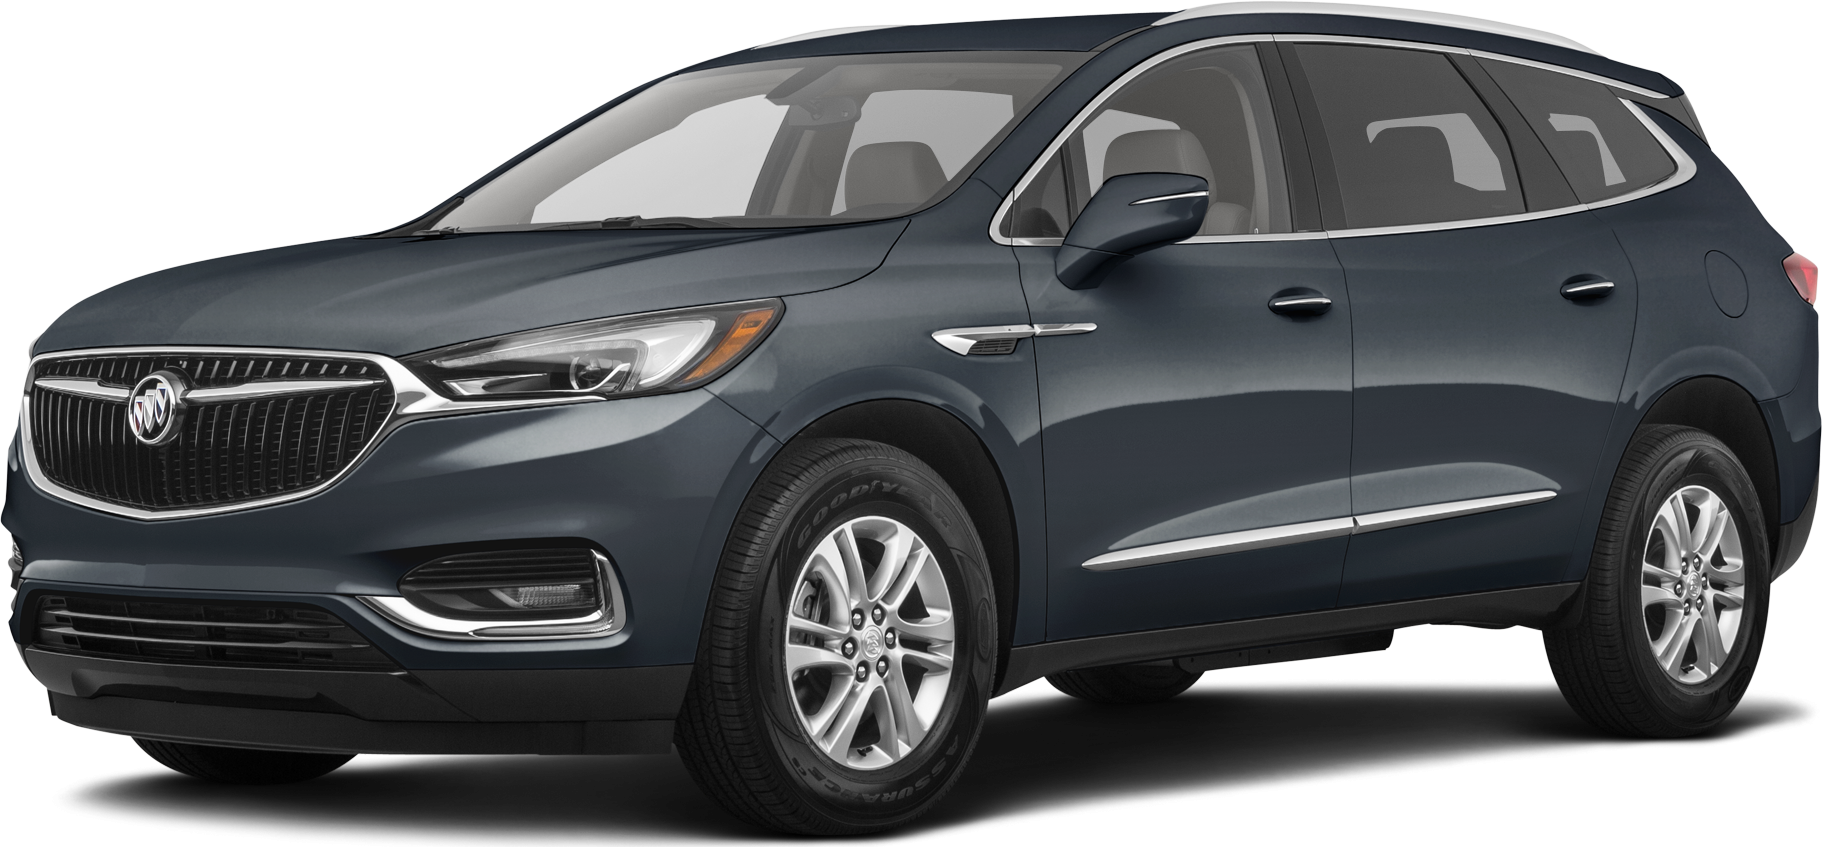 2019 Buick Enclave Prices, Reviews & Pictures | Kelley Blue Book New 2021 Buick Enclave Interior Pictures, Invoice Price, Lease